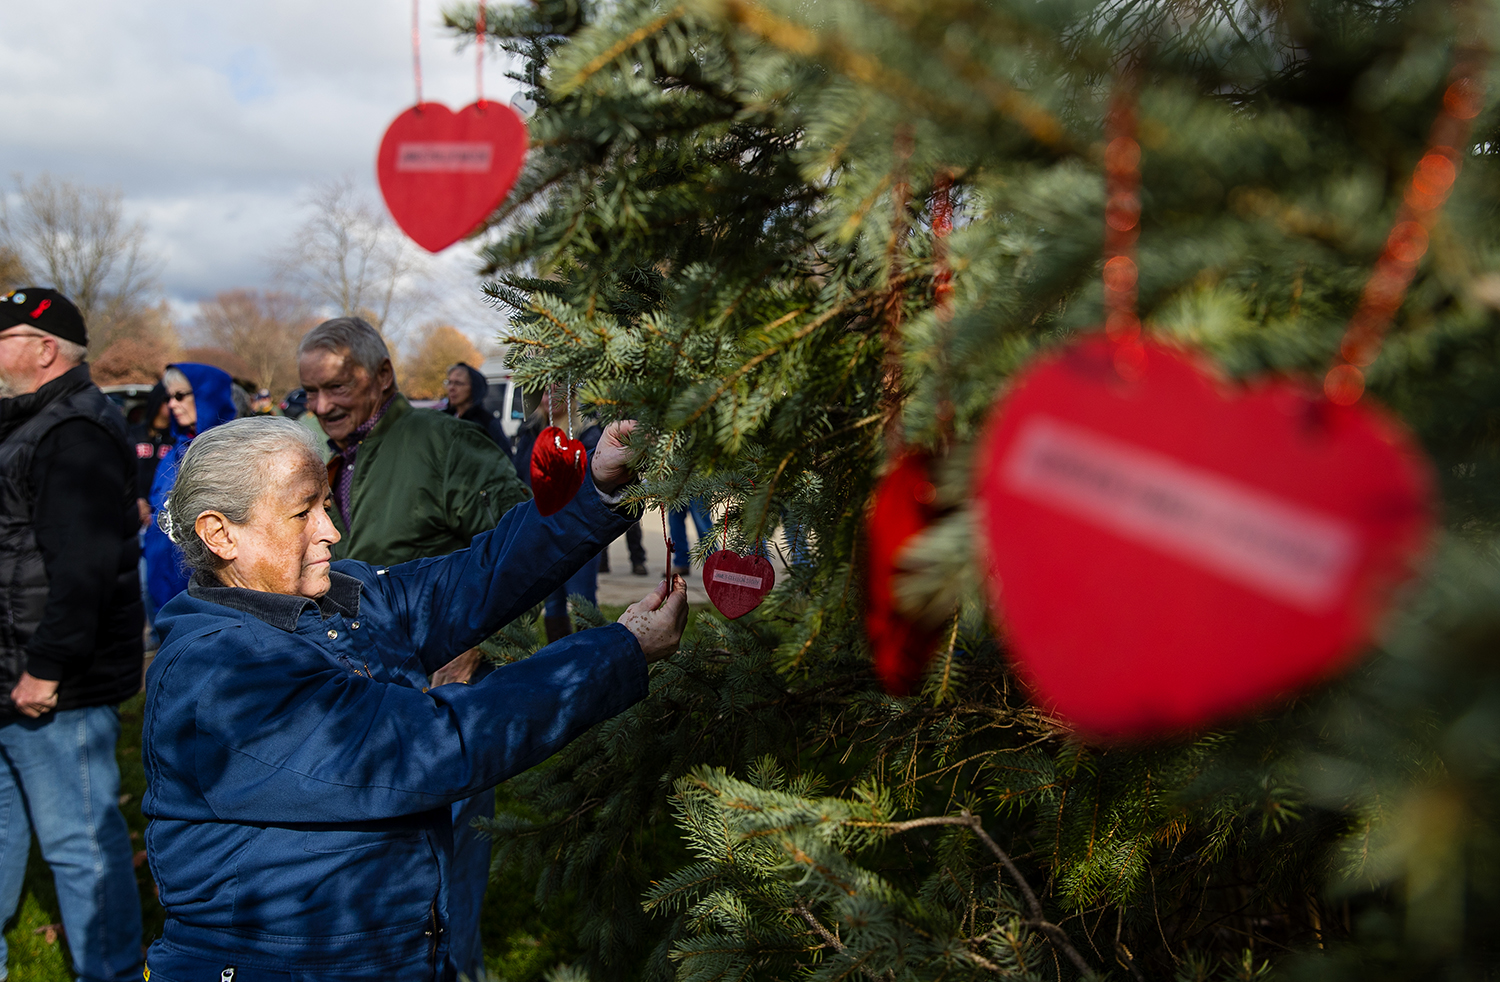 Susie Justus places an ornament on a tree during A Christmas Remembrance ceremony at the Vietnam Veterans Memorial at Oak Ridge Cemetery Saturday, Dec. 1, 2018. The Air Force veteran was joined by others who placed heart-shaped ornaments as the names of troops listed as prisoner of war or missing in action was read aloud. The Land of Lincoln Chorus provided music for the annual service. [Ted Schurter/The State Journal-Register]